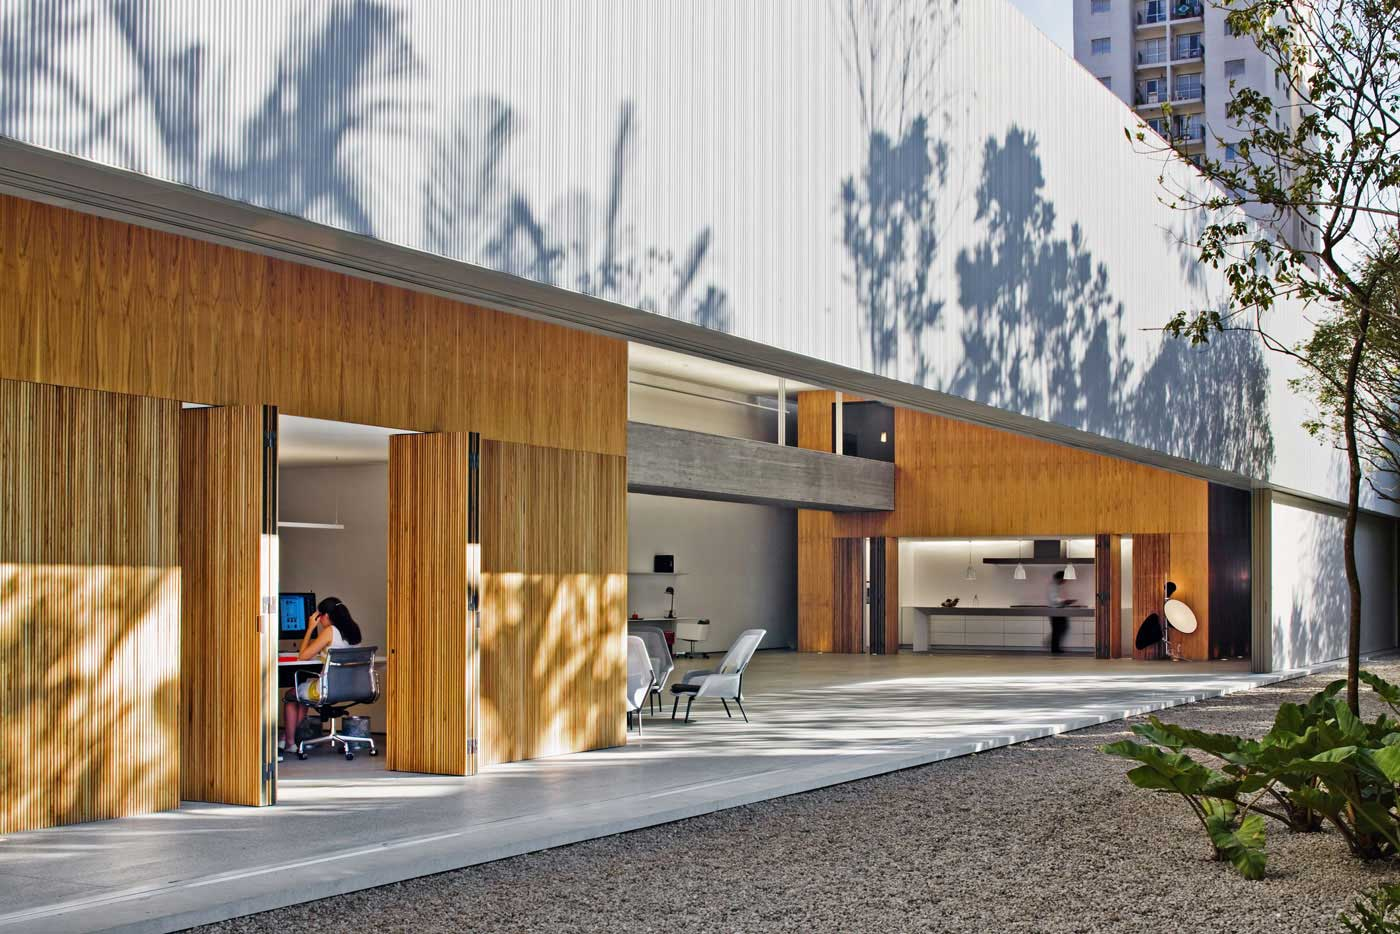 Studio Sc in Sao Paulo by Marcio Kogan from StudioMK27- | Yellowtrace